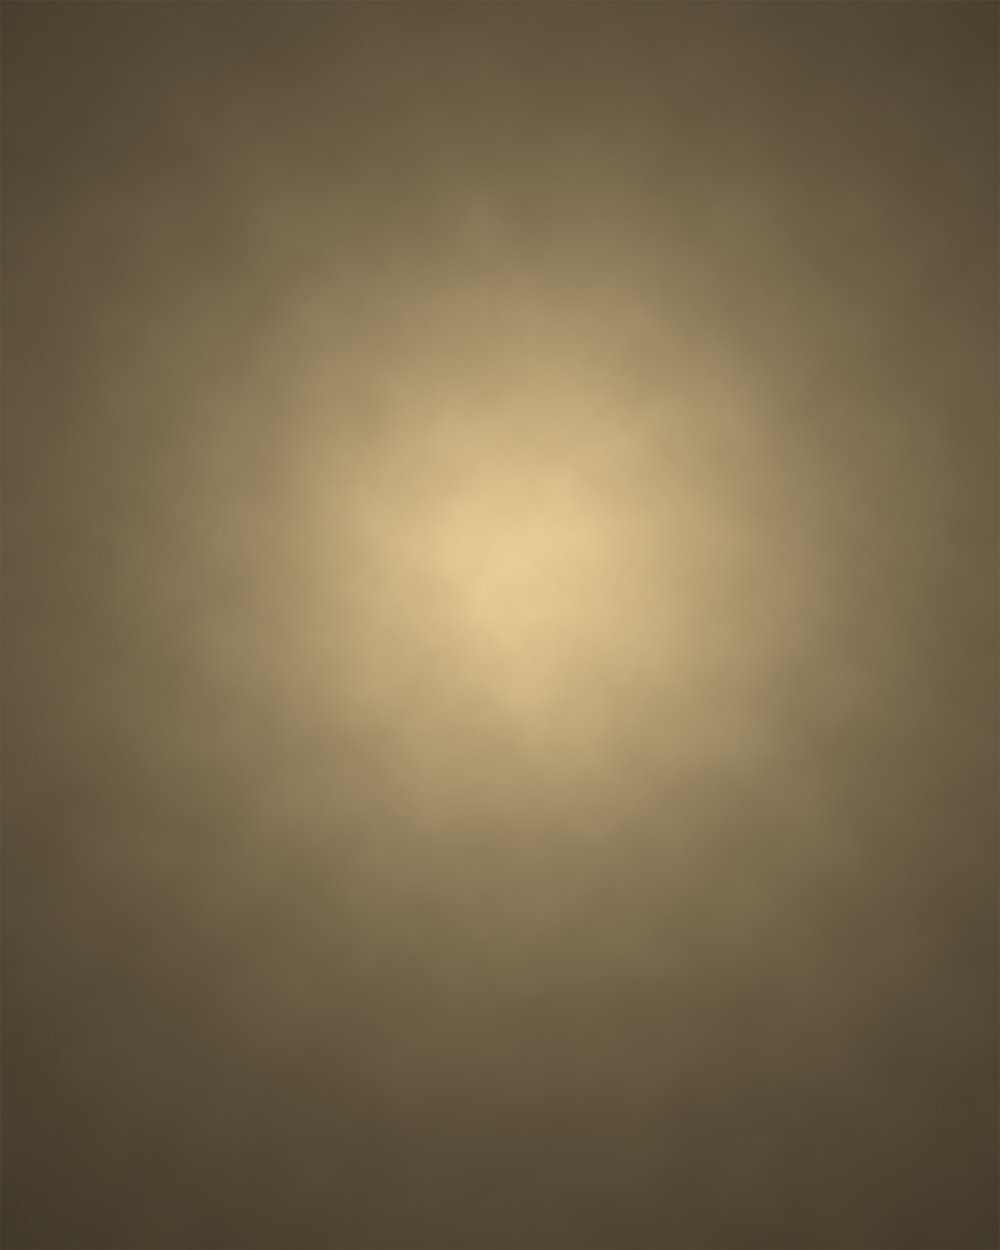 Background Option #8 - Gold/Tan